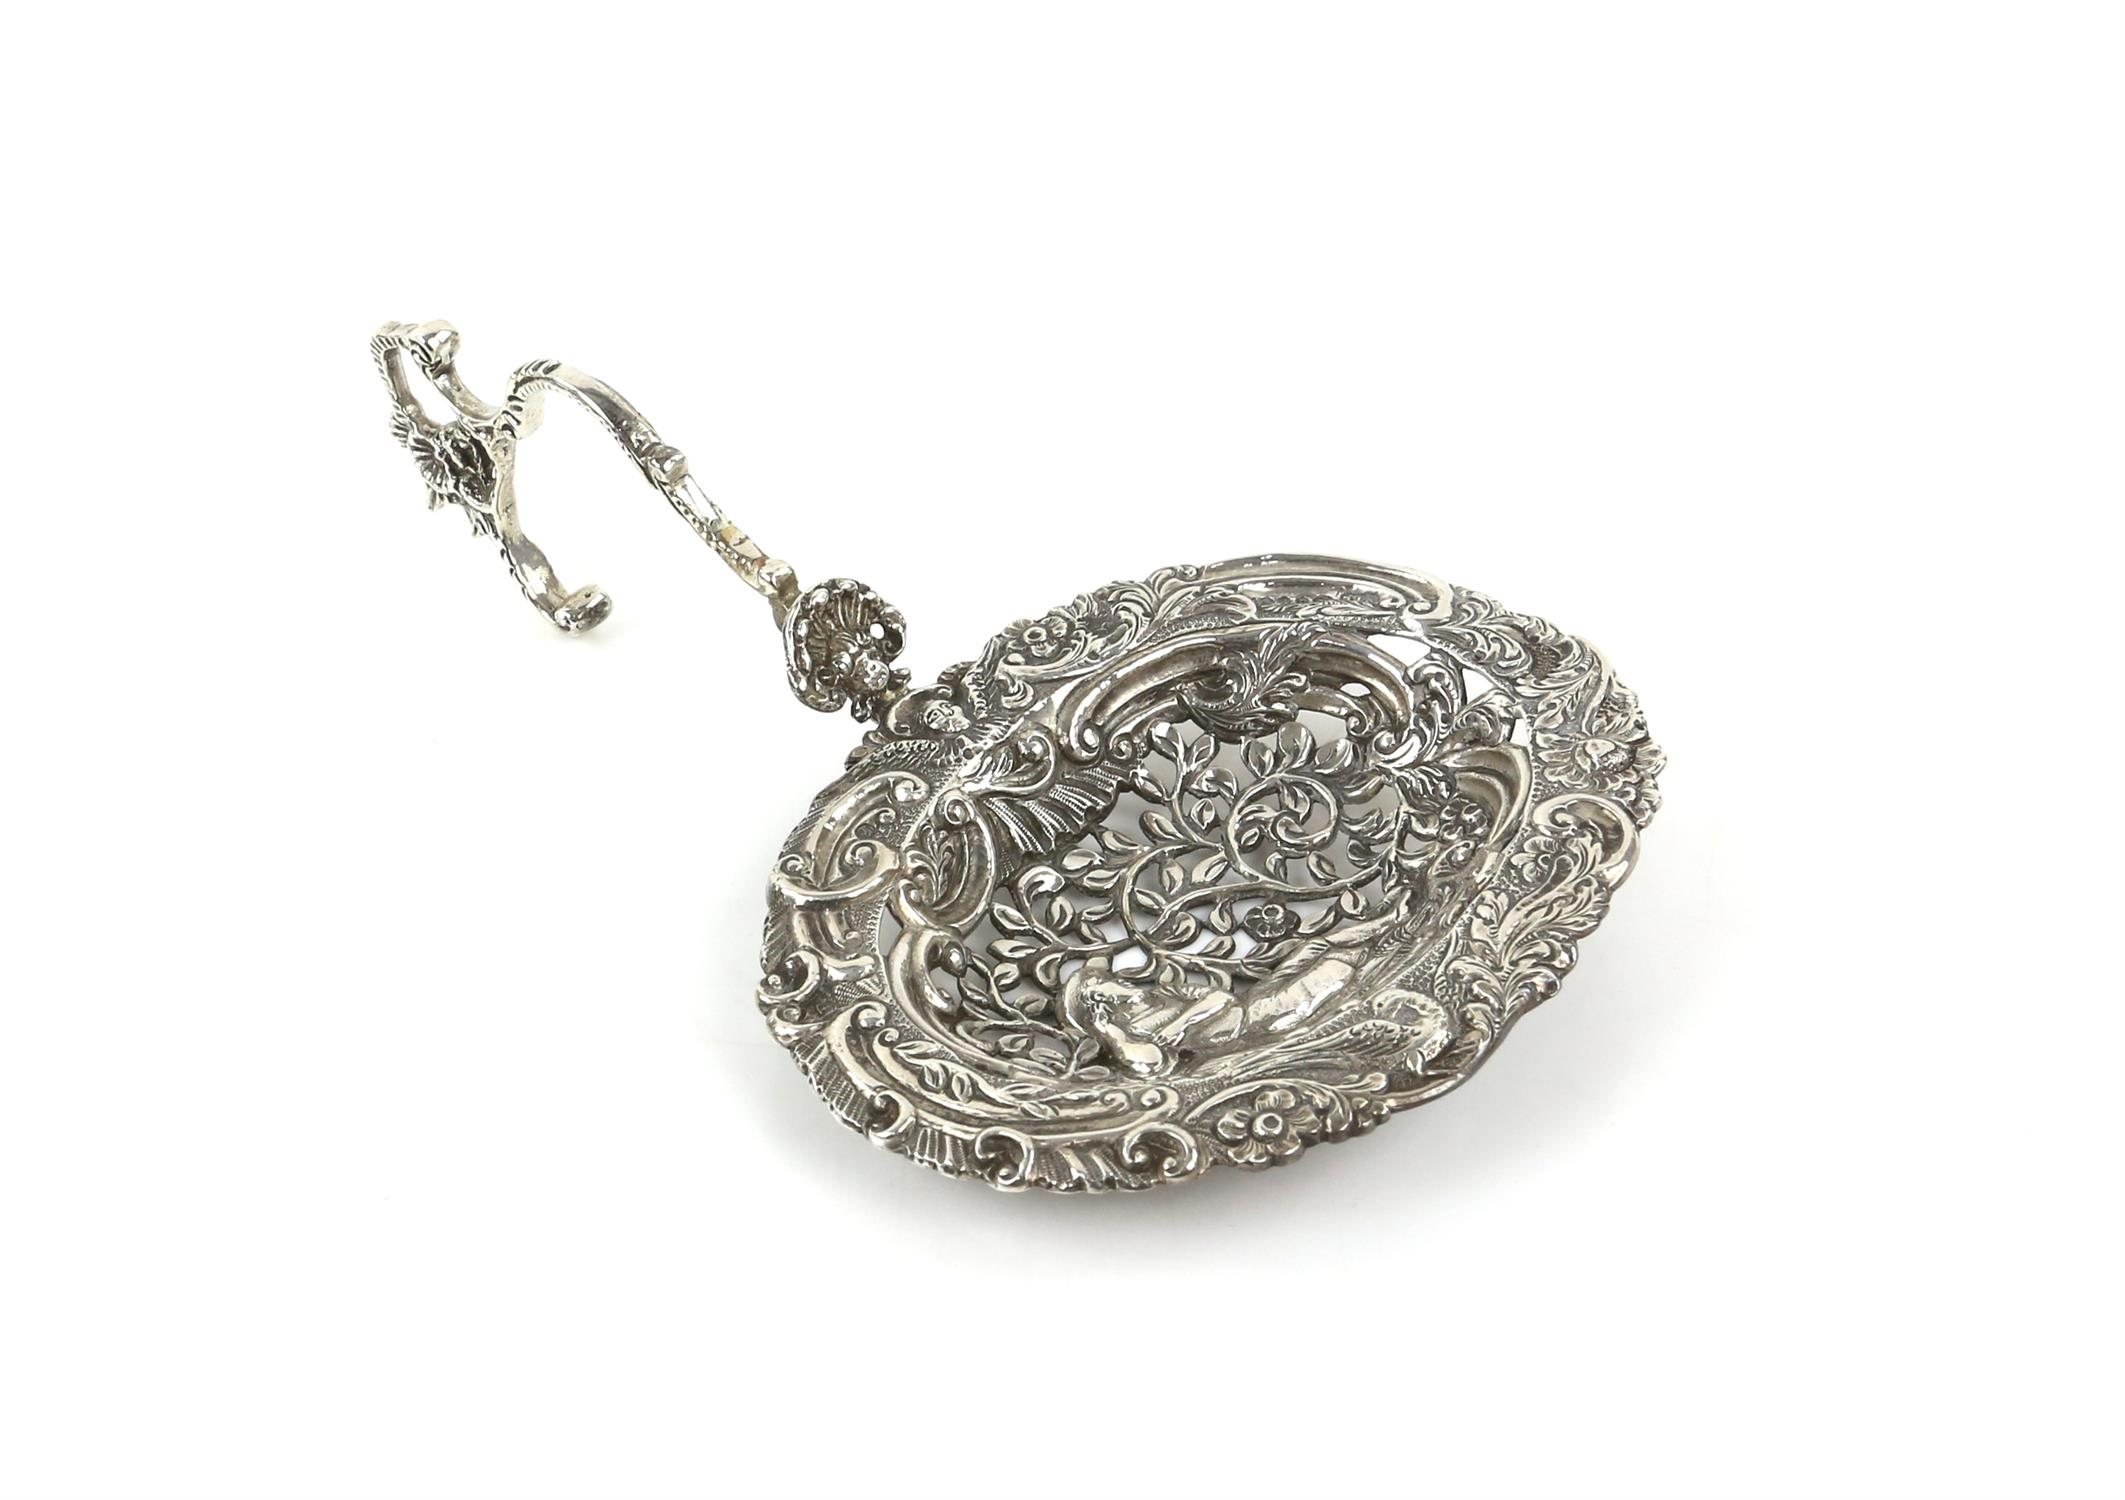 Large Continental silver bon bon sifter spoon with a man surrounded by foliage, import marks ETB